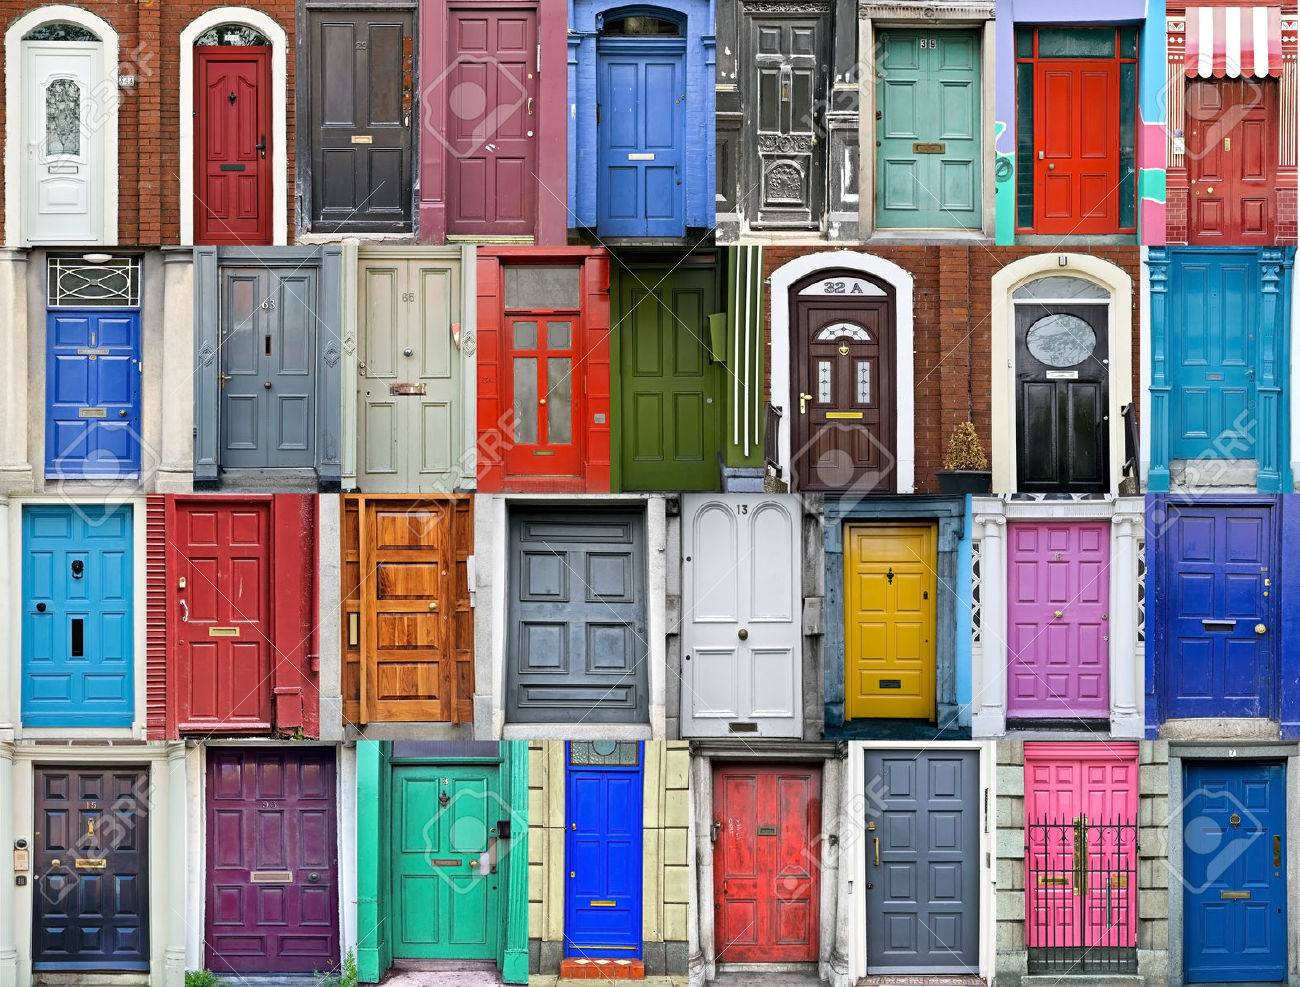 Doors of Dublin Ireland Stock Photo - 43715354 & Doors Of Dublin Ireland Stock Photo Picture And Royalty Free Image ...